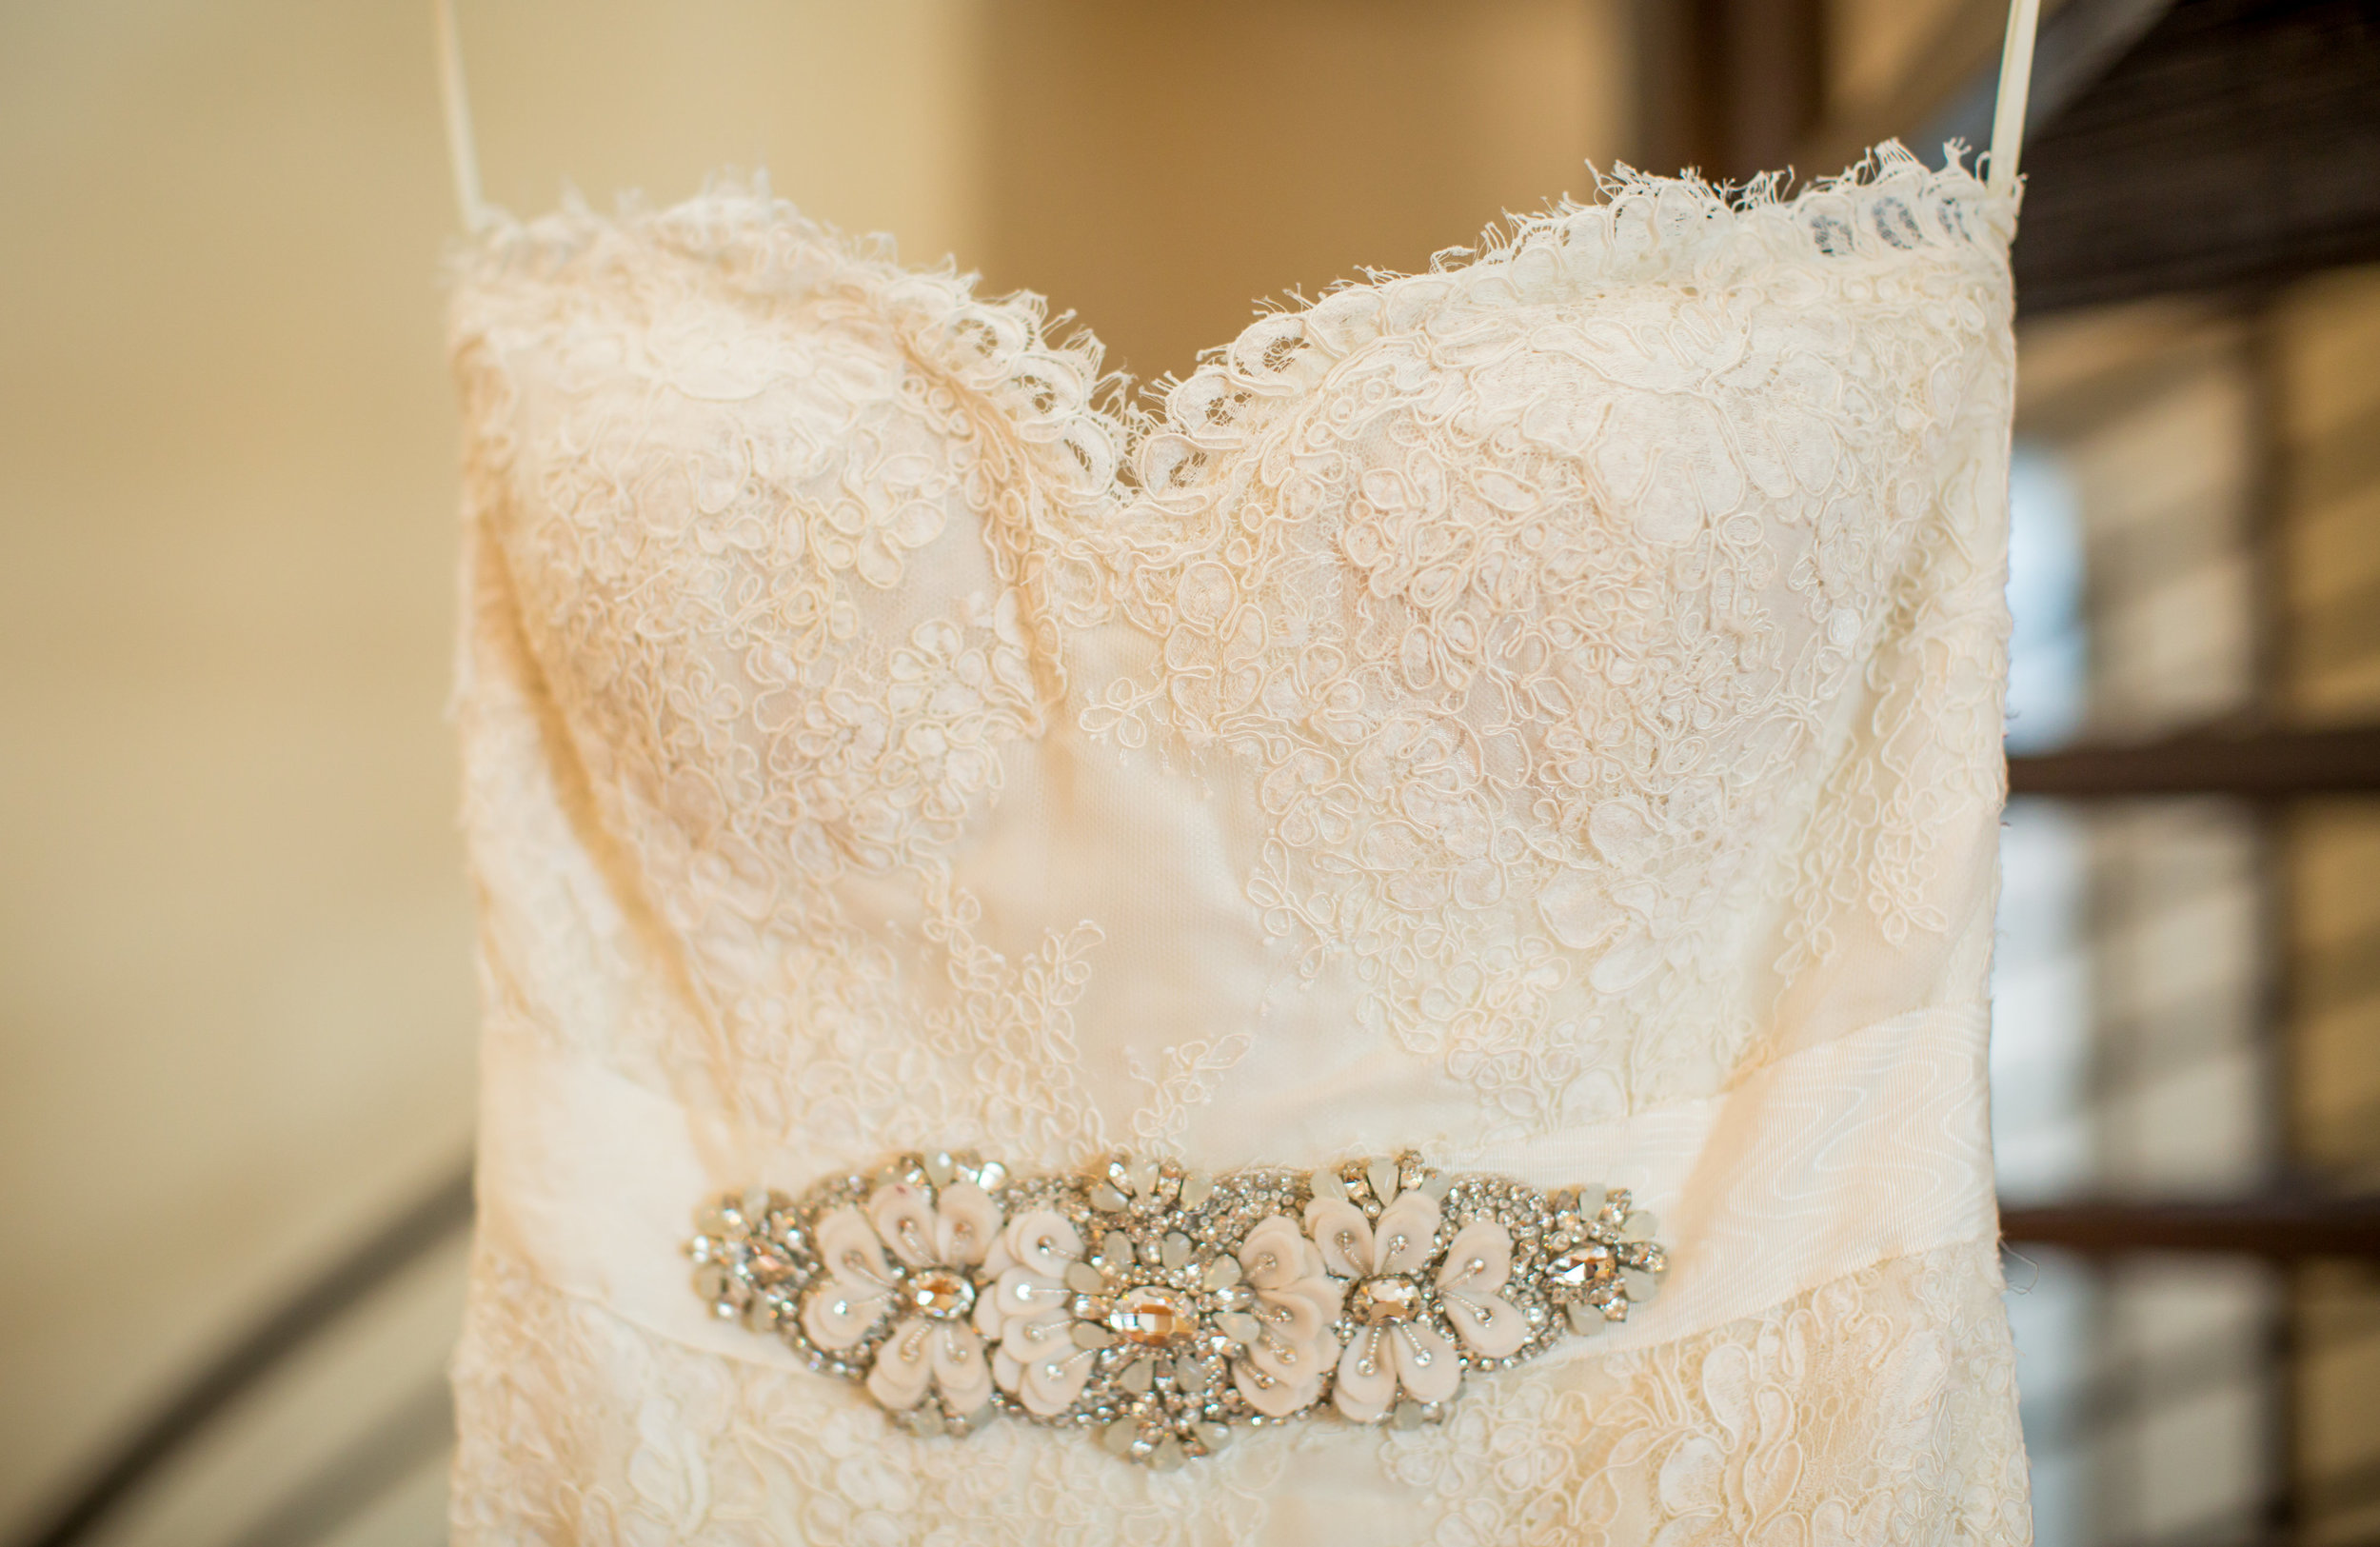 lace wedding dress with beading - - A Diamond Hotel Penthouse Wedding by Katelyn Owens Photography